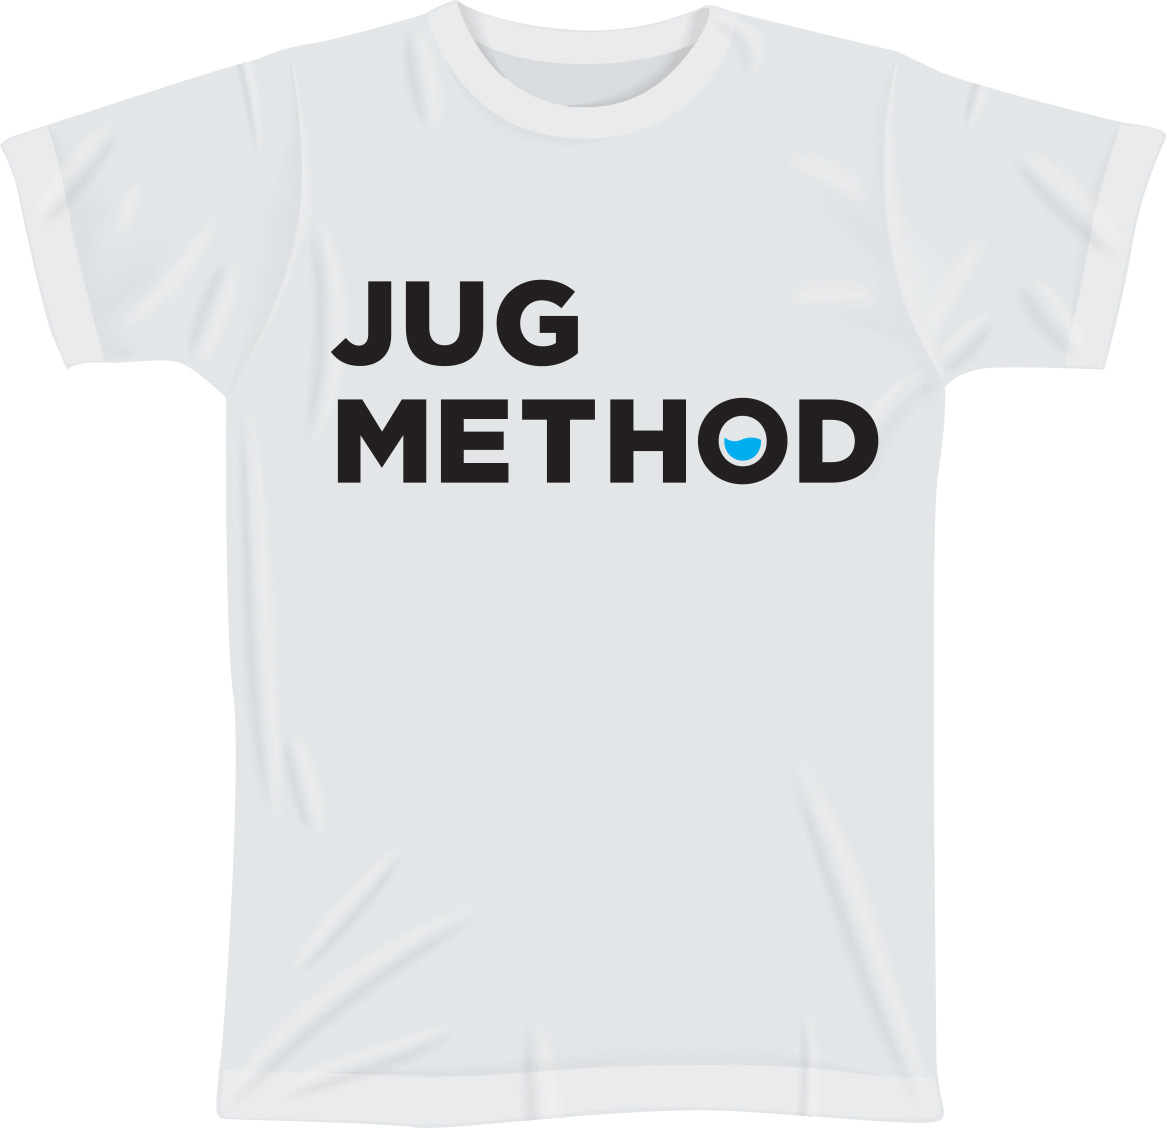 Jug Method White T-Shirt